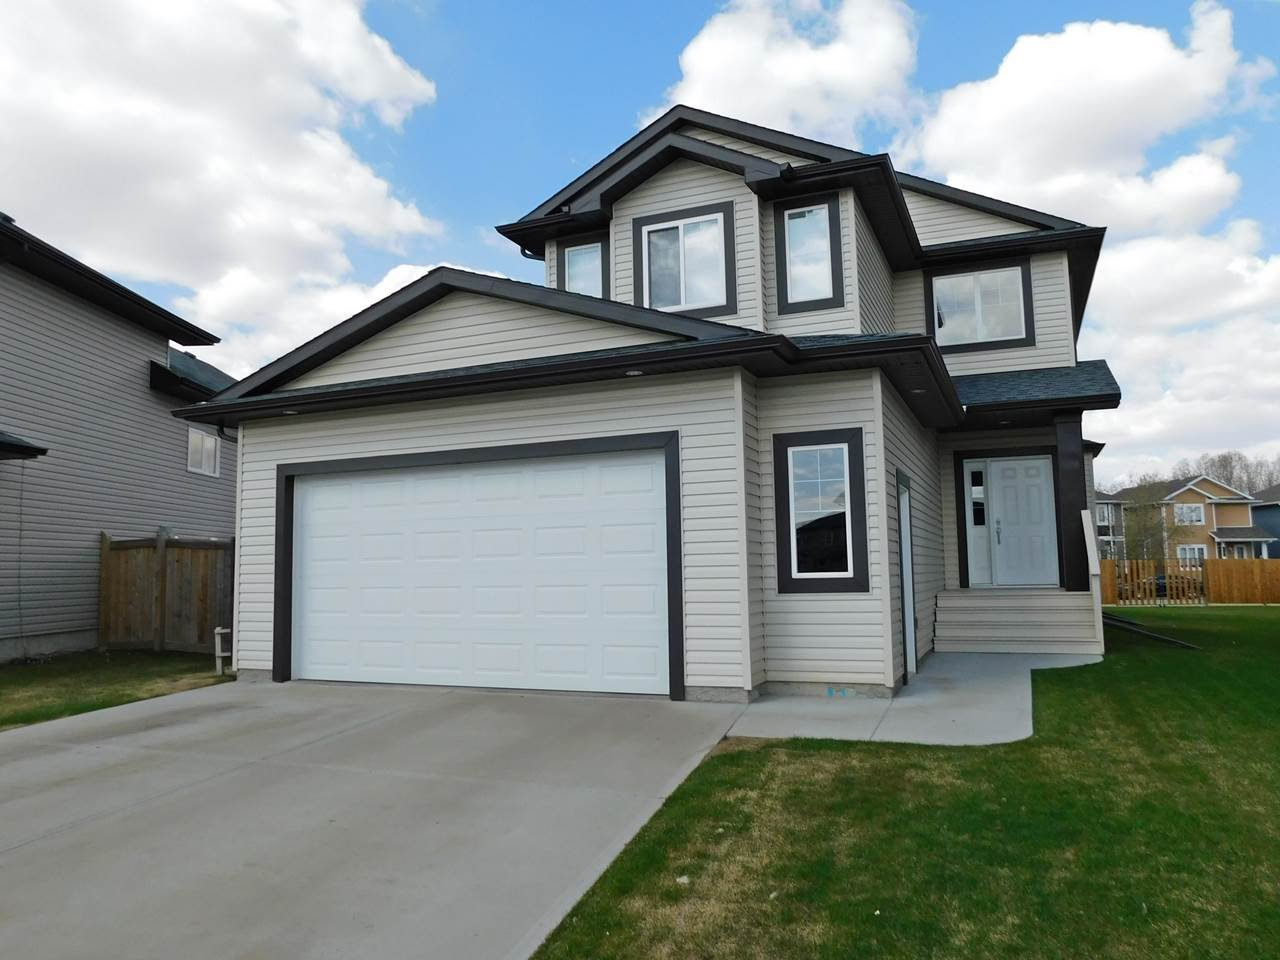 Main Photo: 100 Landing Trails Drive: Gibbons House for sale : MLS®# E4224937